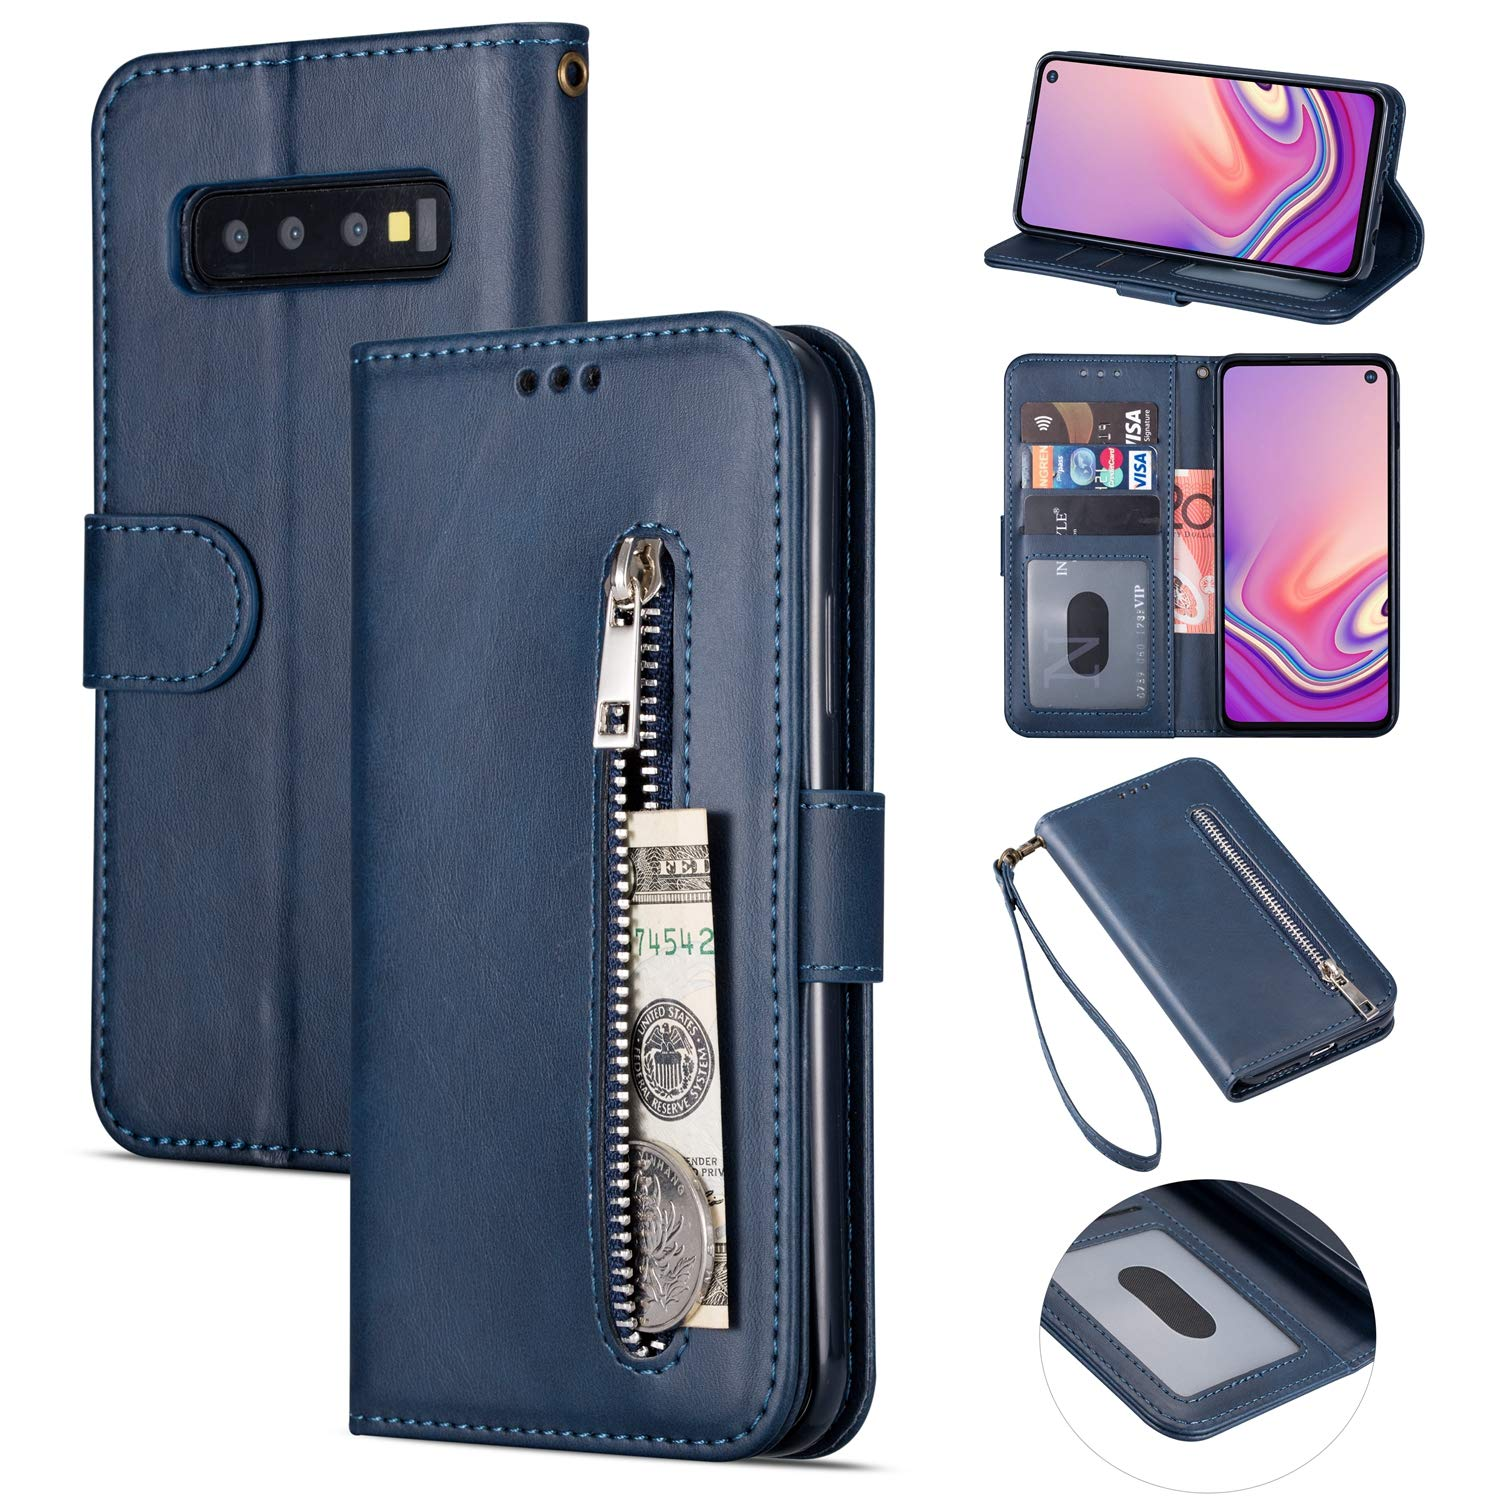 Zipper Wallet Case with Black Dual-use Pen for Samsung Galaxy S10 Plus,Aoucase Money Coin Pocket Card Holder Shock Resistant Strap Purse PU Leather Case for Samsung Galaxy S10 Plus - Dark Blue